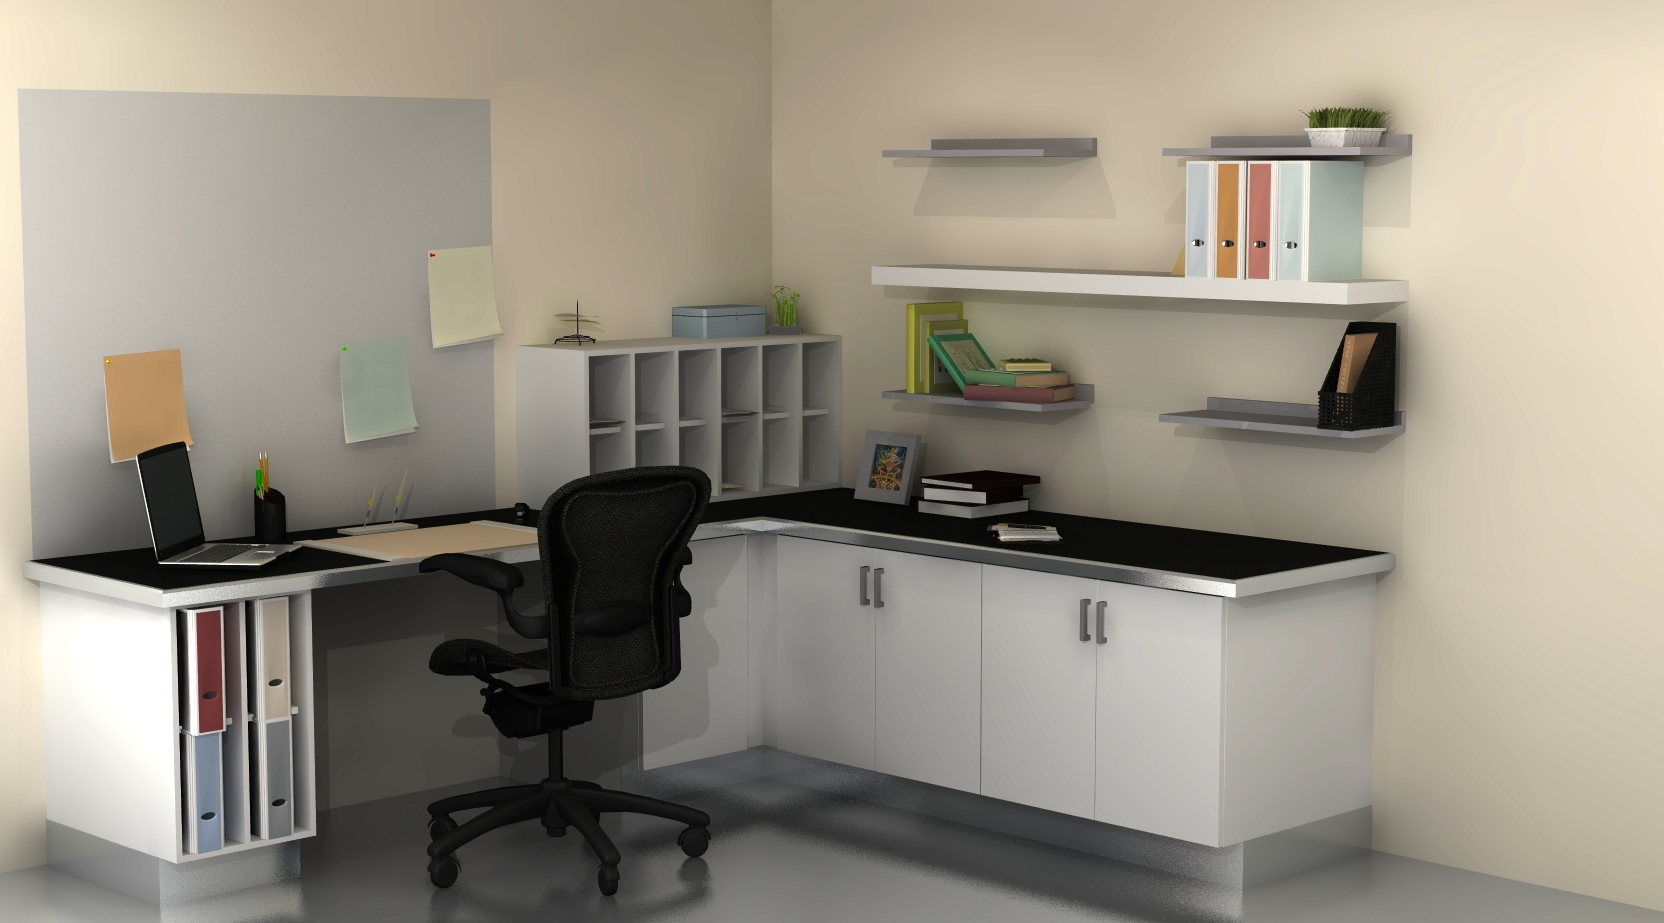 Ikea Office Design ~ Useful spaces a home office with ikea cabinets